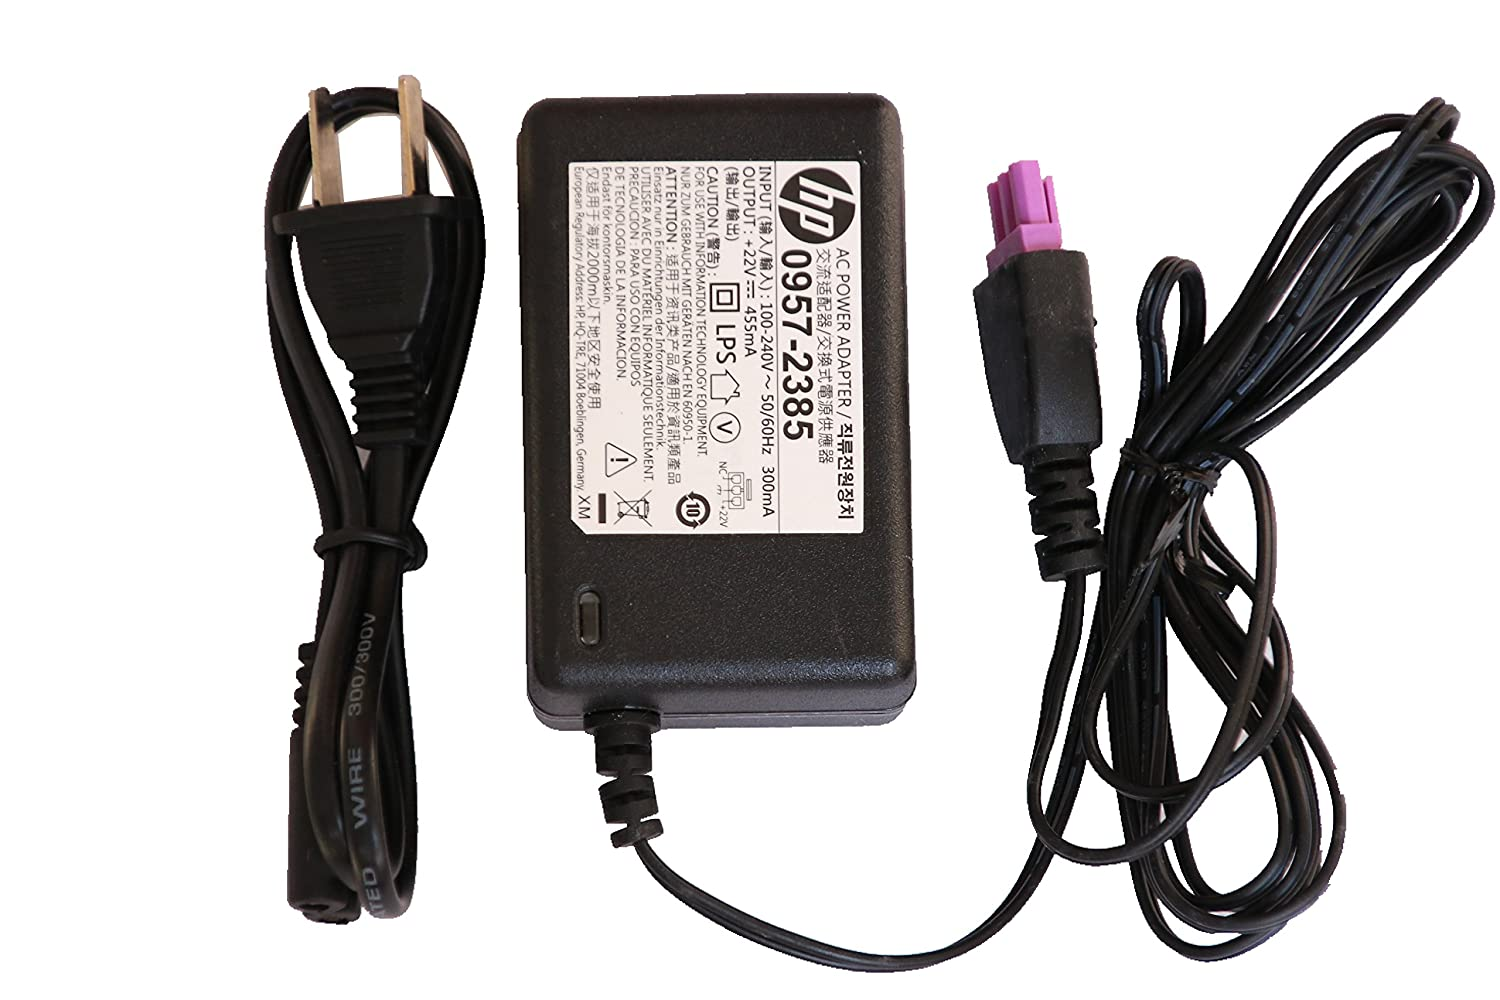 Amazon.com: AC DC Adapter HP 0957-2403 0957-2385 for HP Deskjet 1010 1012  1510(not PSC 1510) 1512 1513 1514 1518 2515 2548 2540 2541 2542 2543 2544  2546 ...